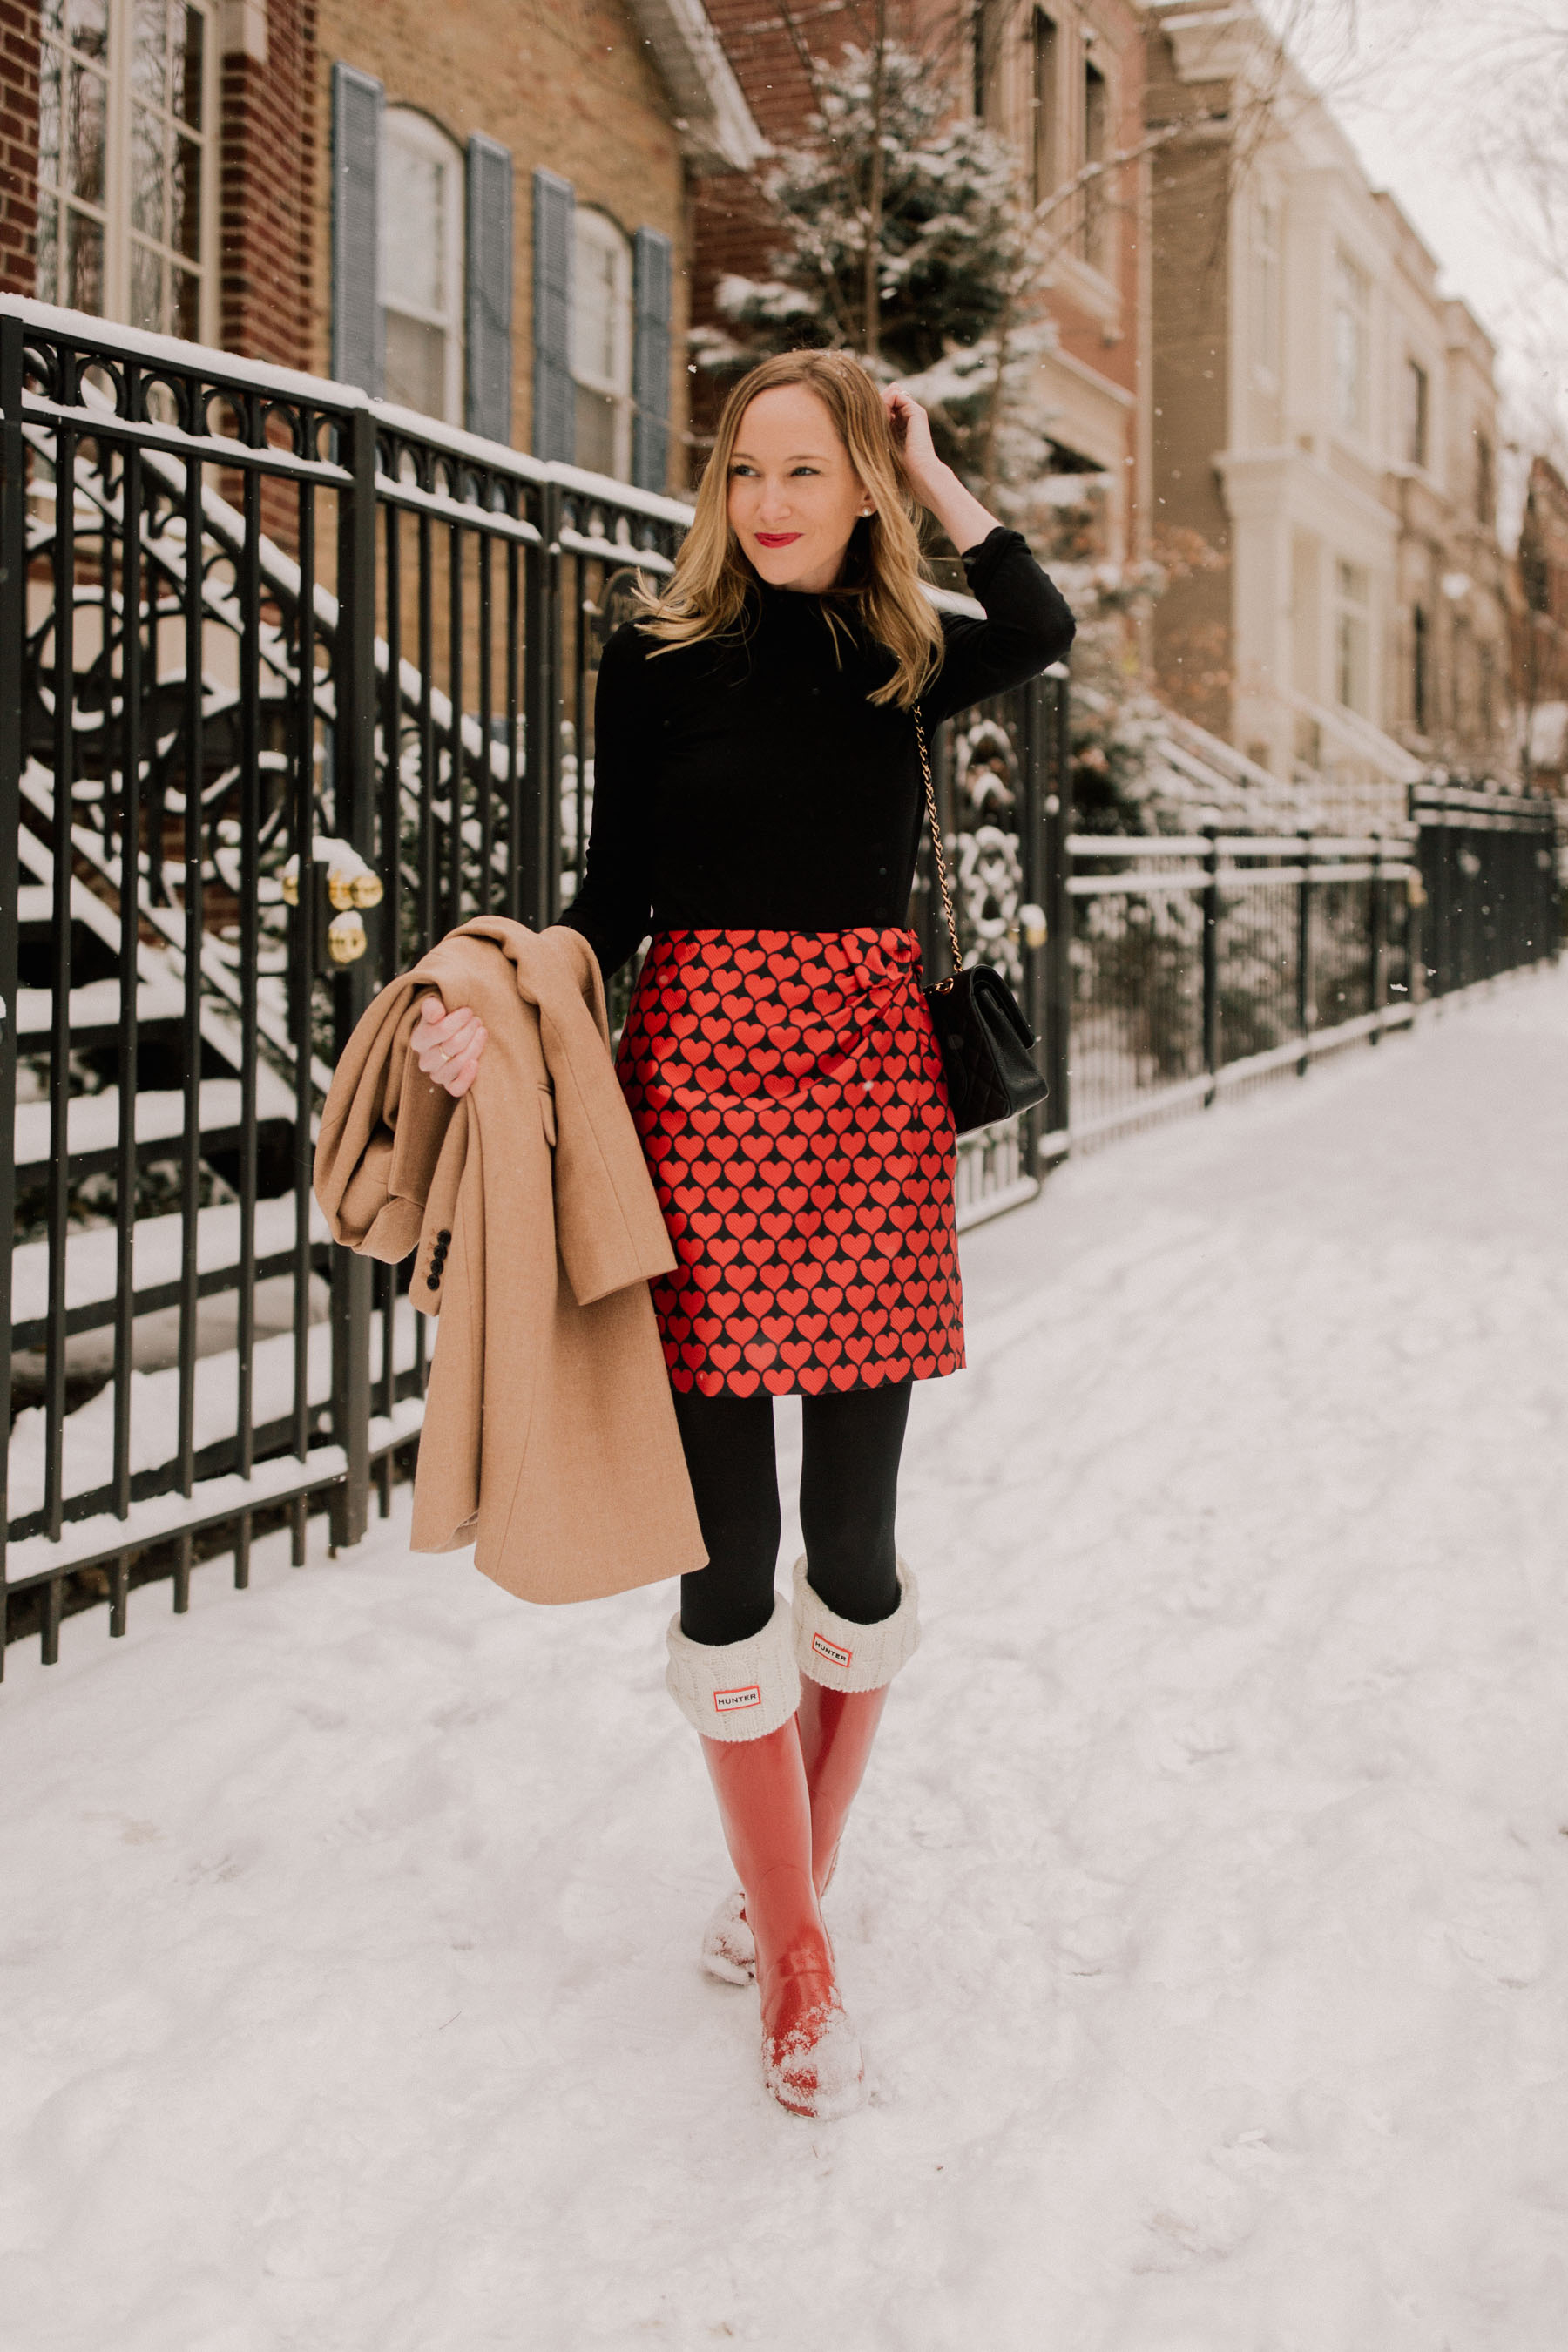 Valentine's Day Outfit - Heart Skirt / J.Crew Topcoat / Chanel Bag / Black Turtleneck / Hunter Boots / Black Tights - Kelly in the City